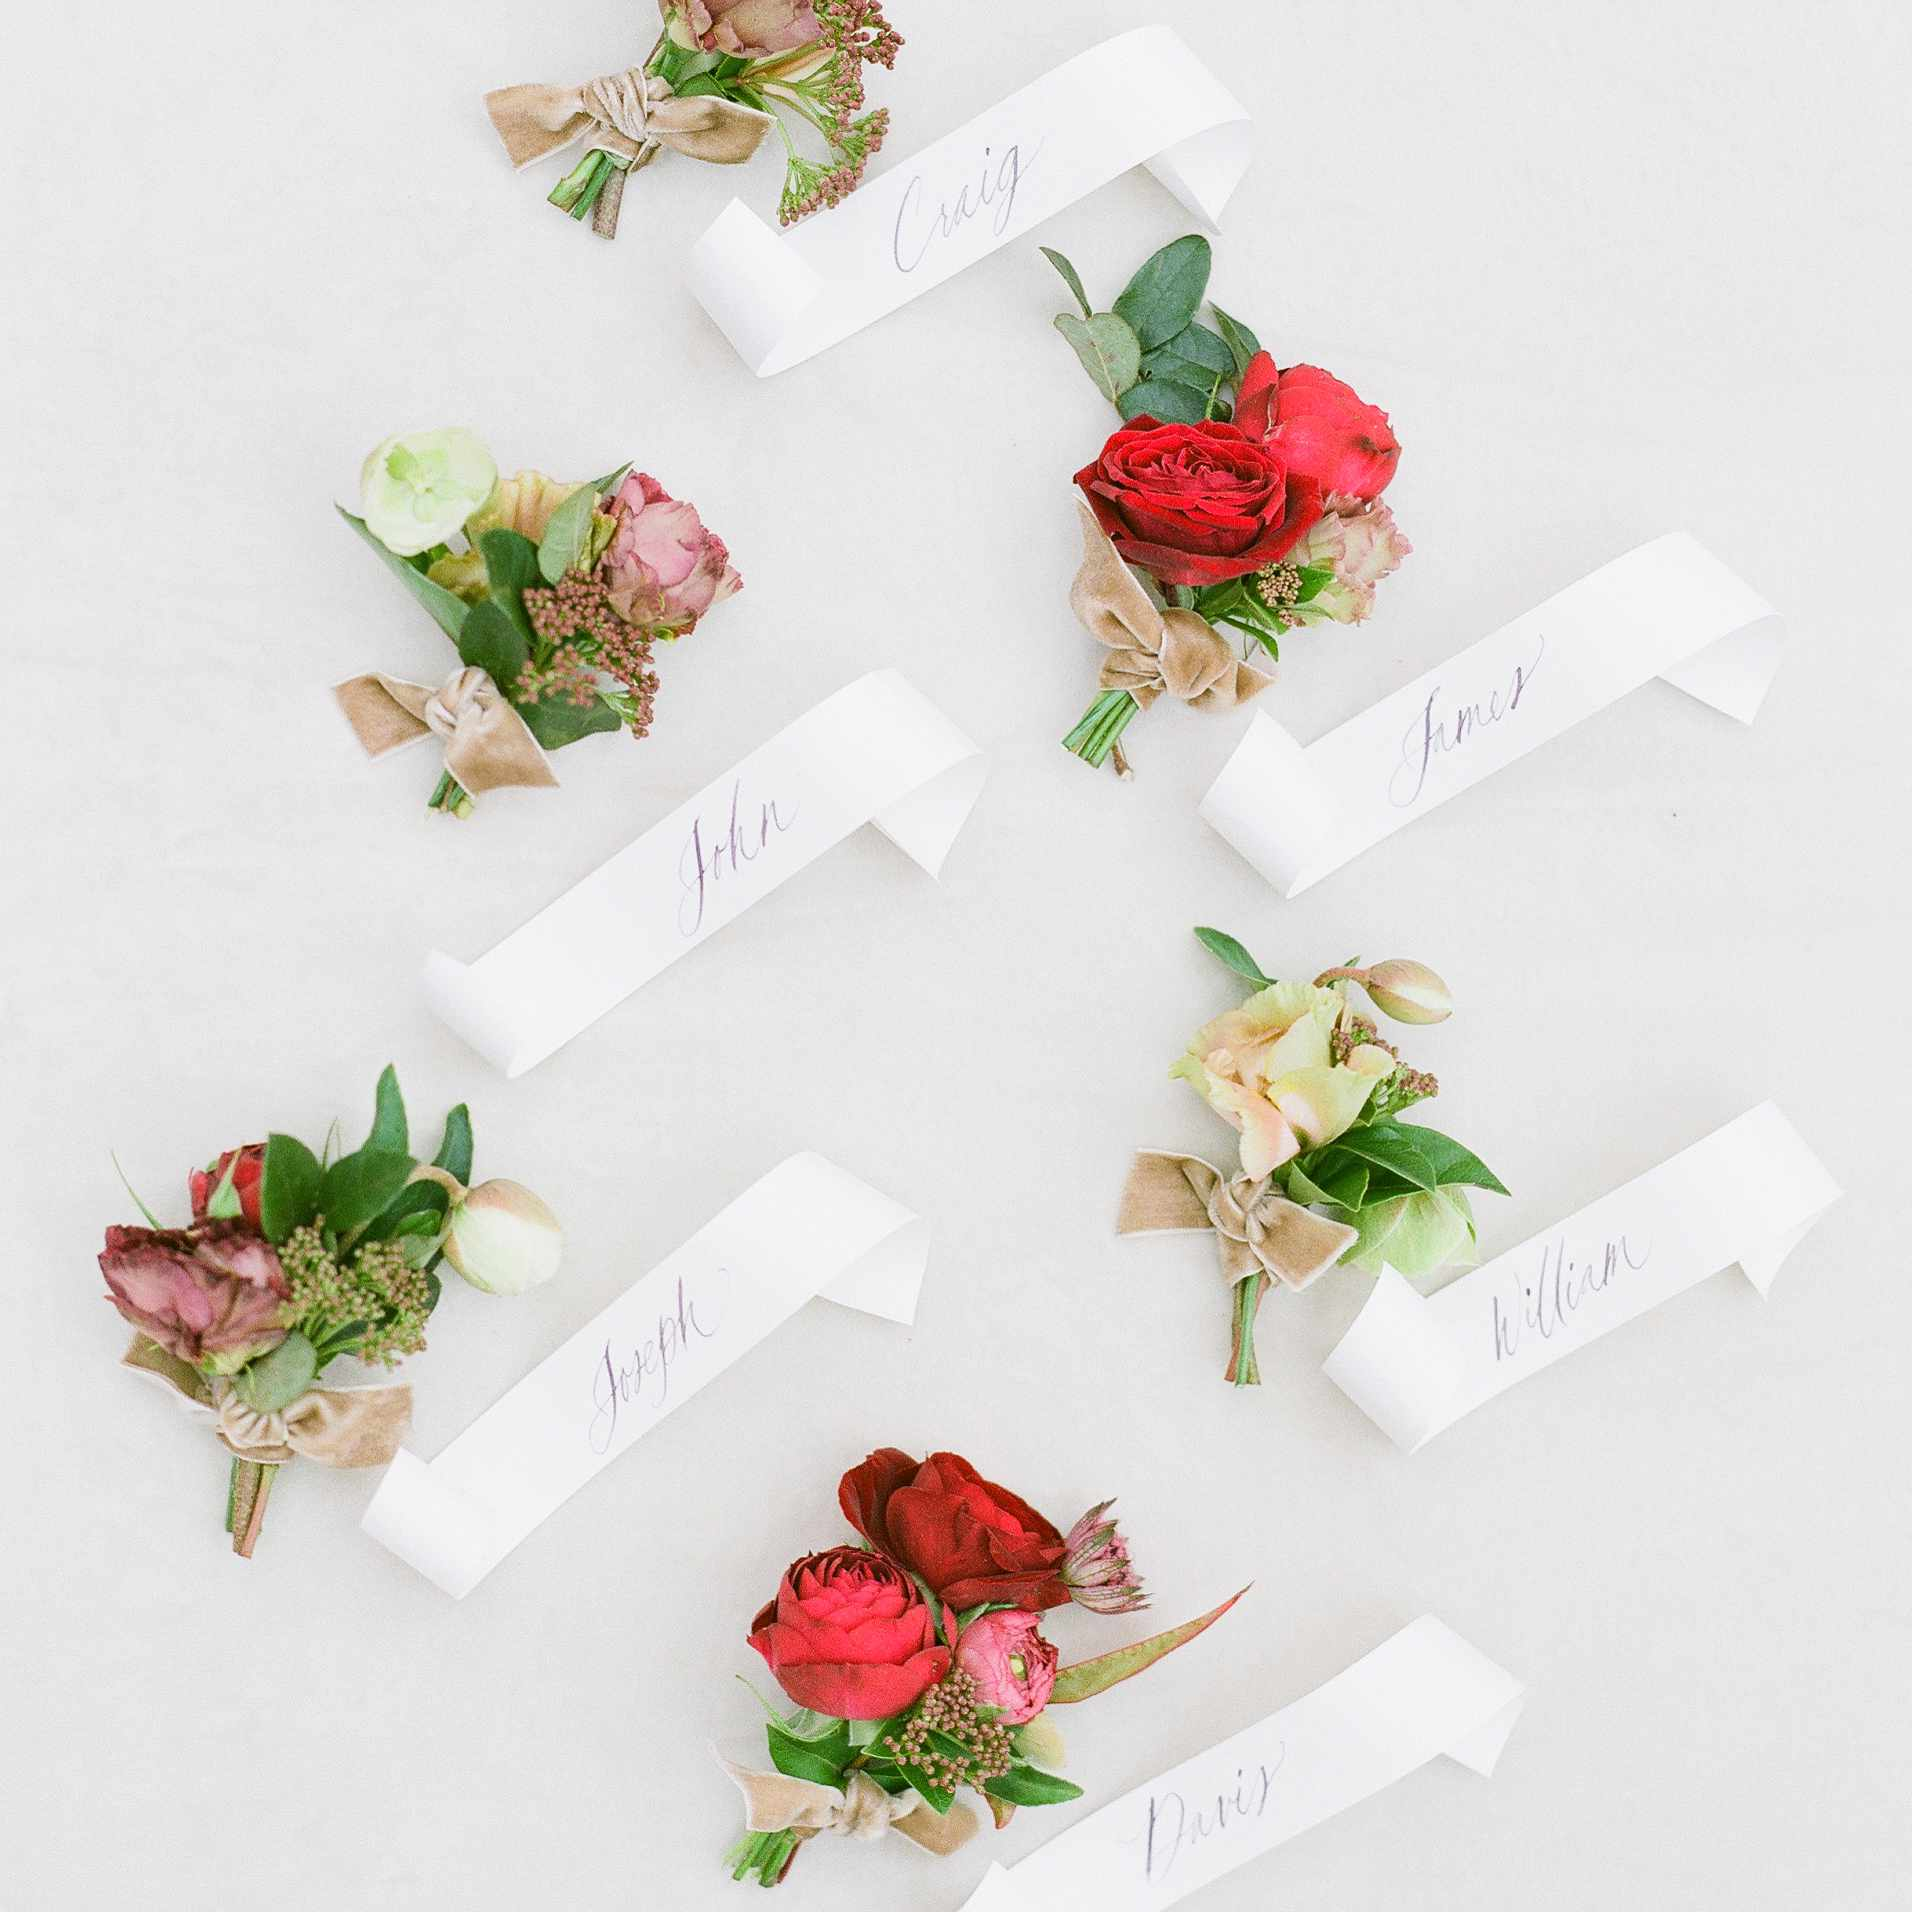 Wintry Boutonnieres with roses